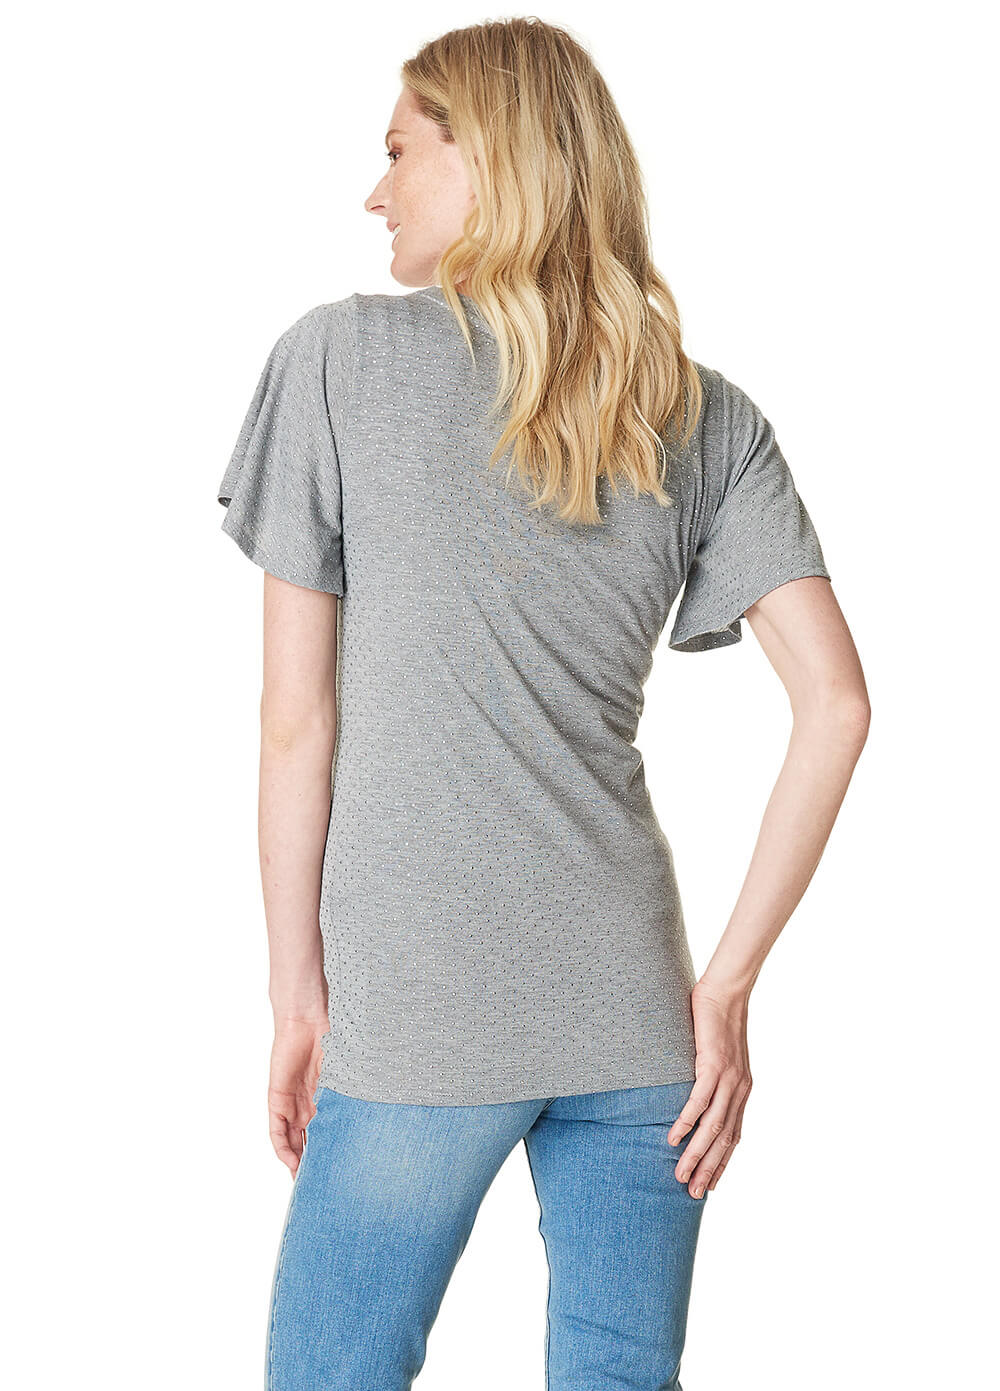 Aaf Studded Maternity T-Shirt in Grey by Noppies